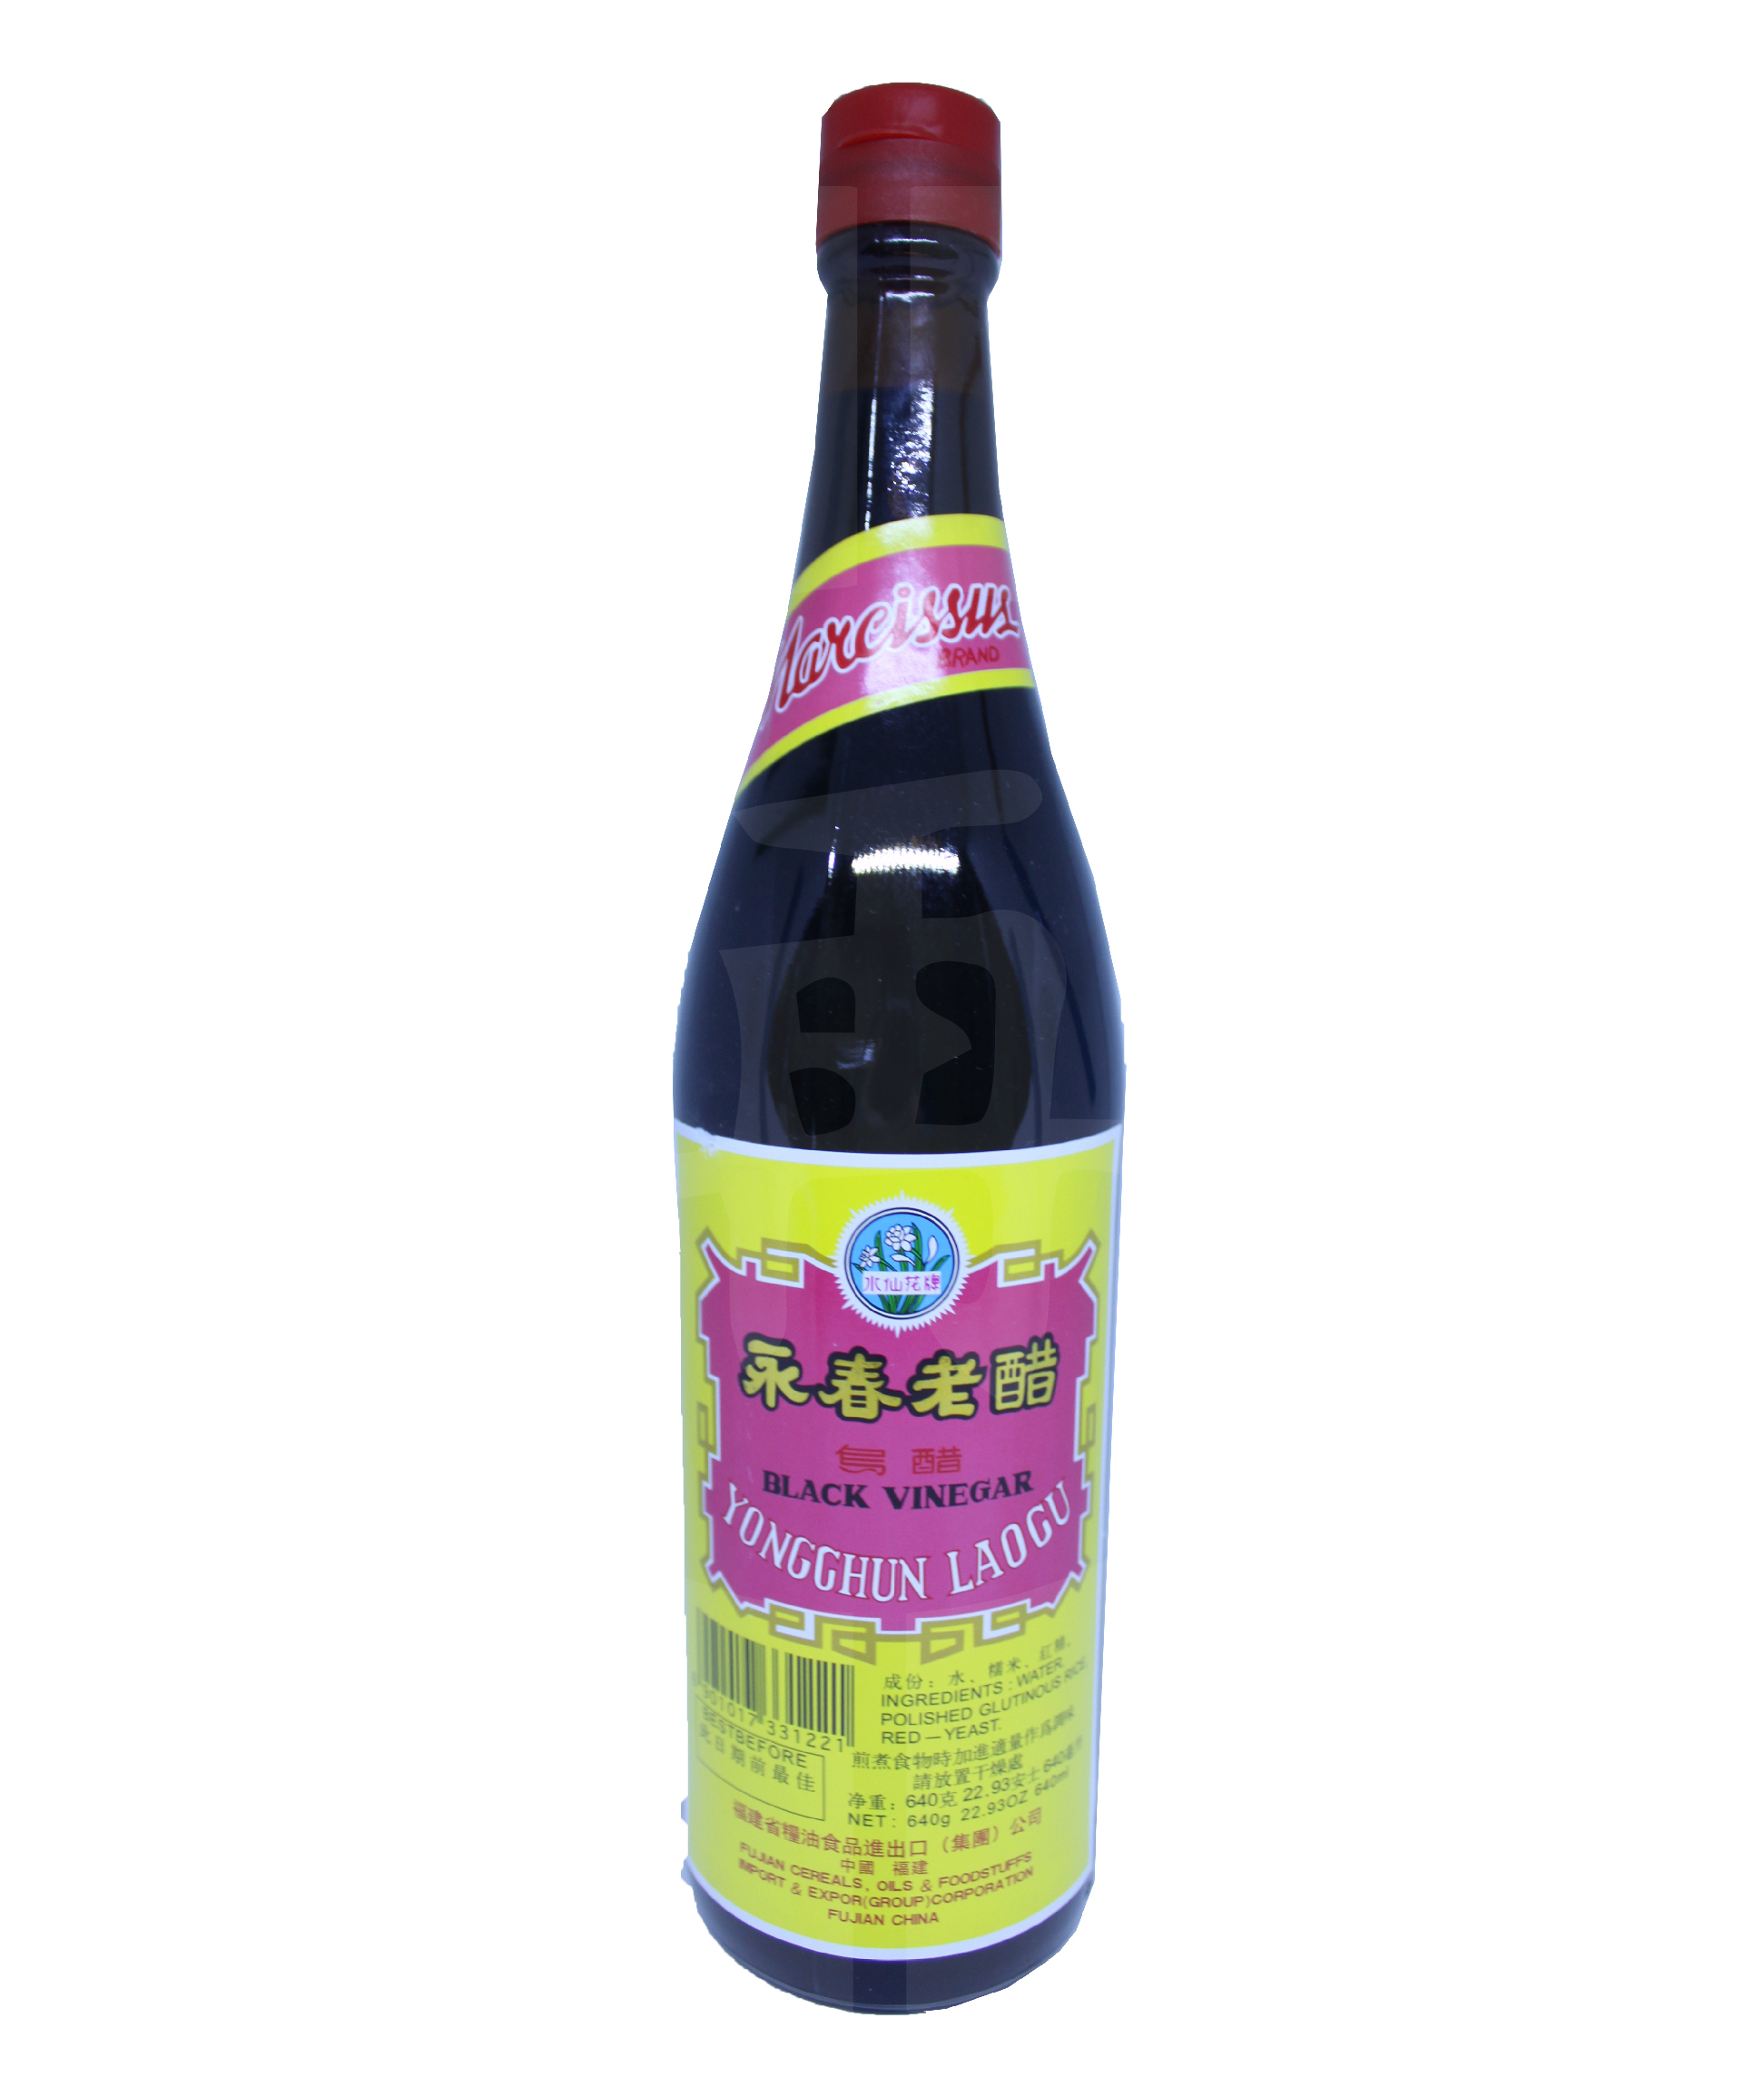 YongChun BlackVinegar (WM).jpg